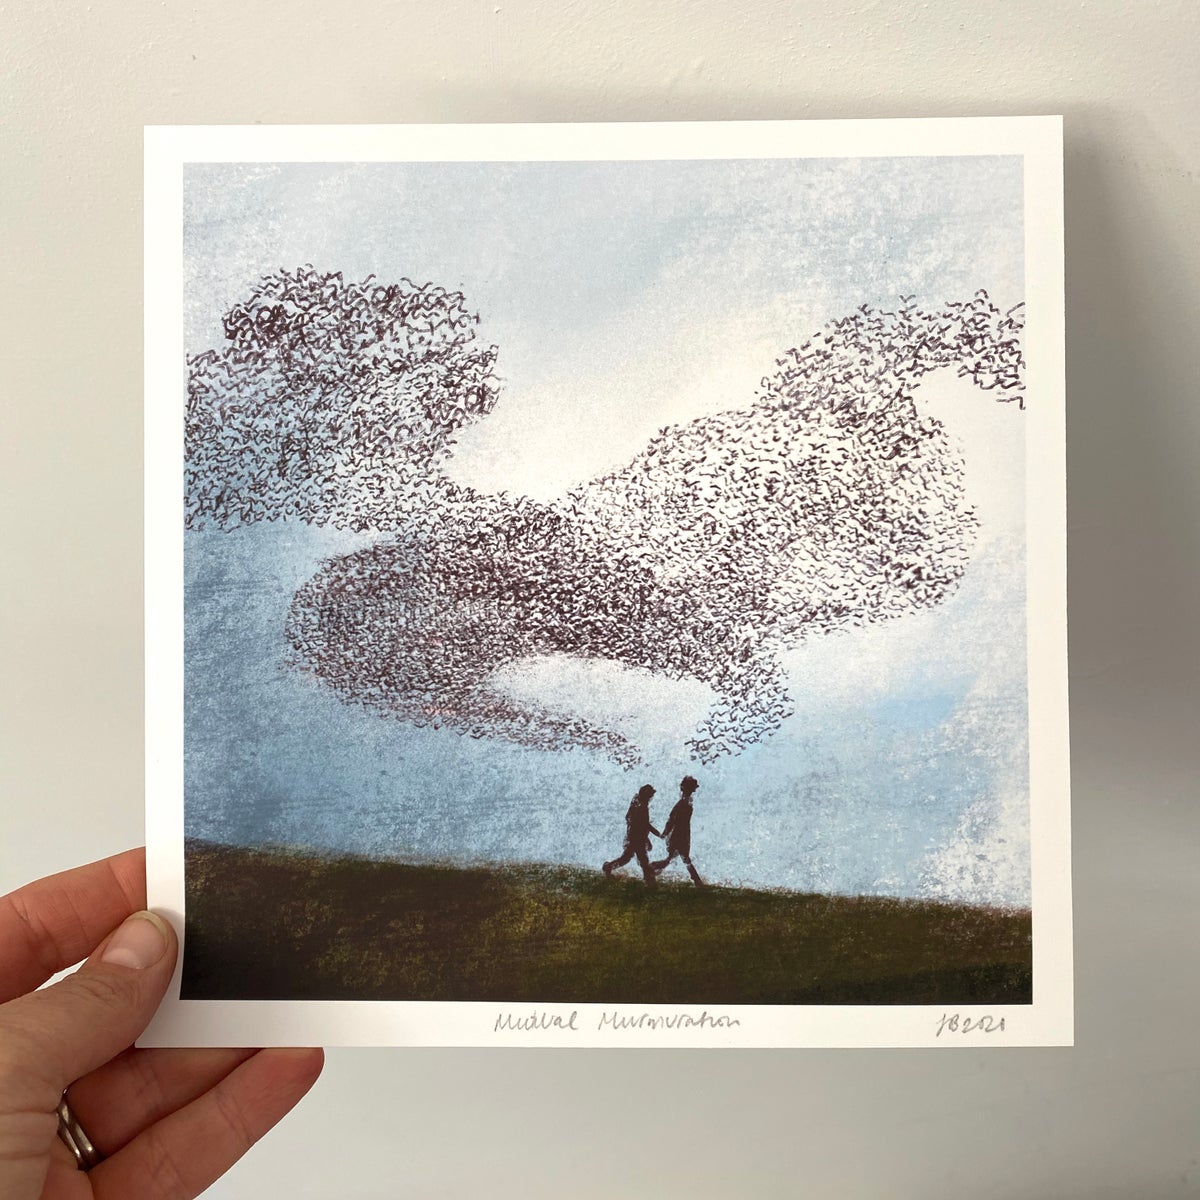 Image of 'Mutual Murmuration' Archive Quality Print